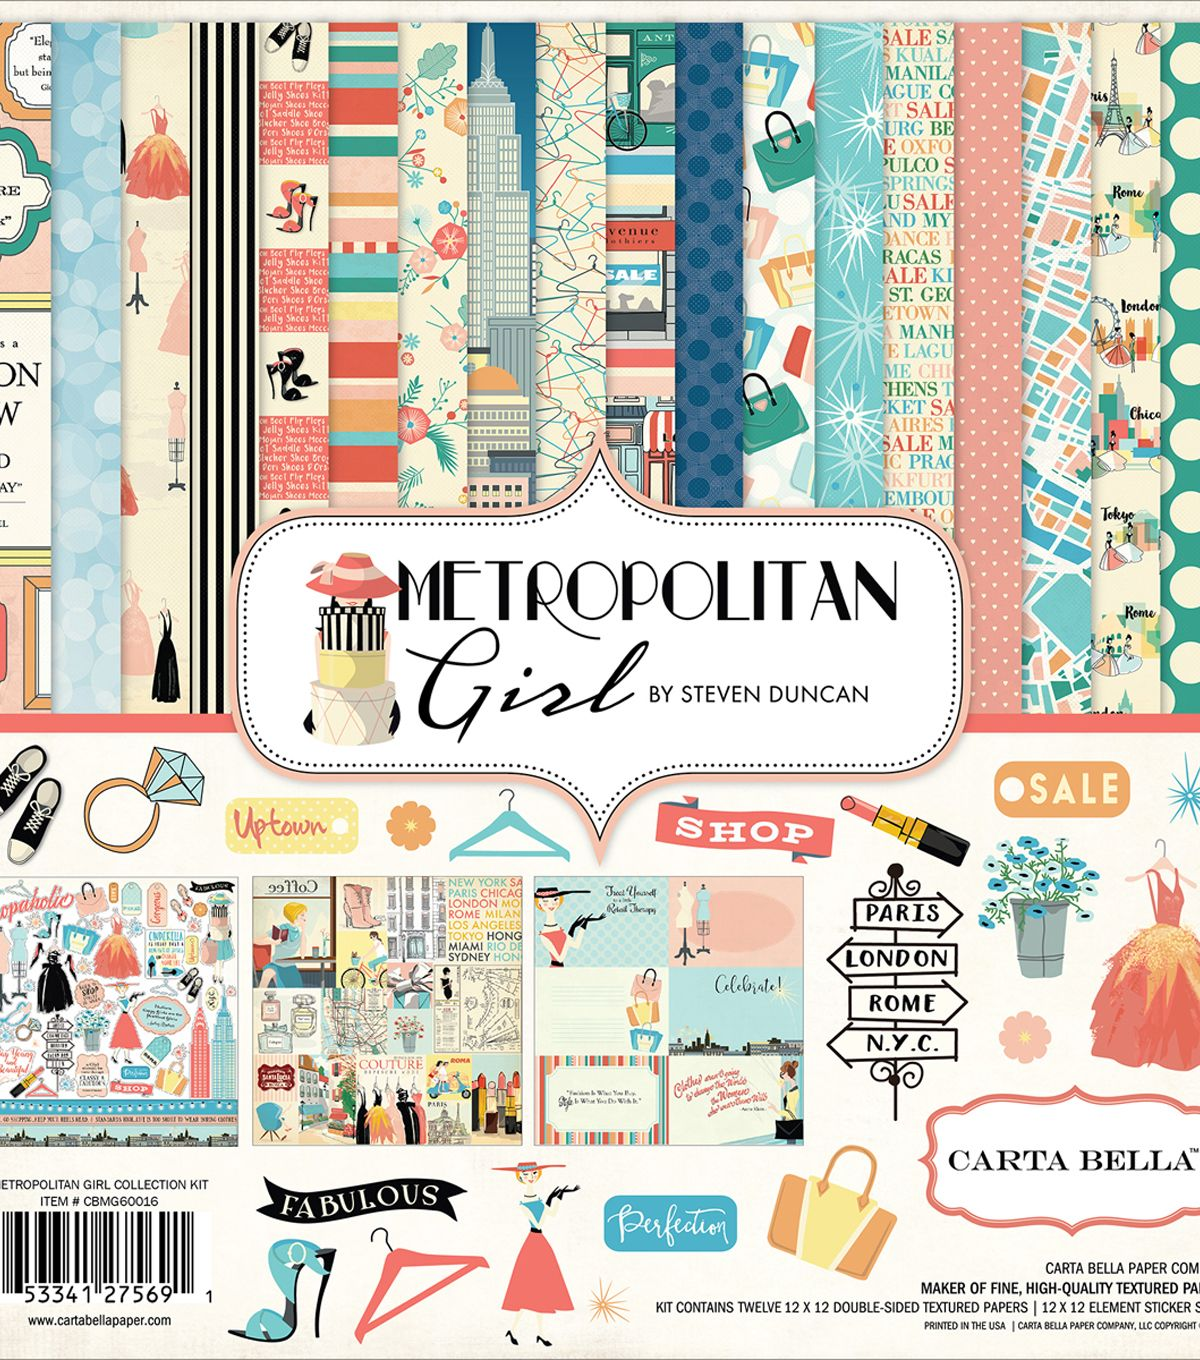 /& 12 x 12 Coordinating Sticker Sheet Two Souls 12 x 12 Scrapbook Paper Pack by Kaisercraft 12 Papers 2 of each design